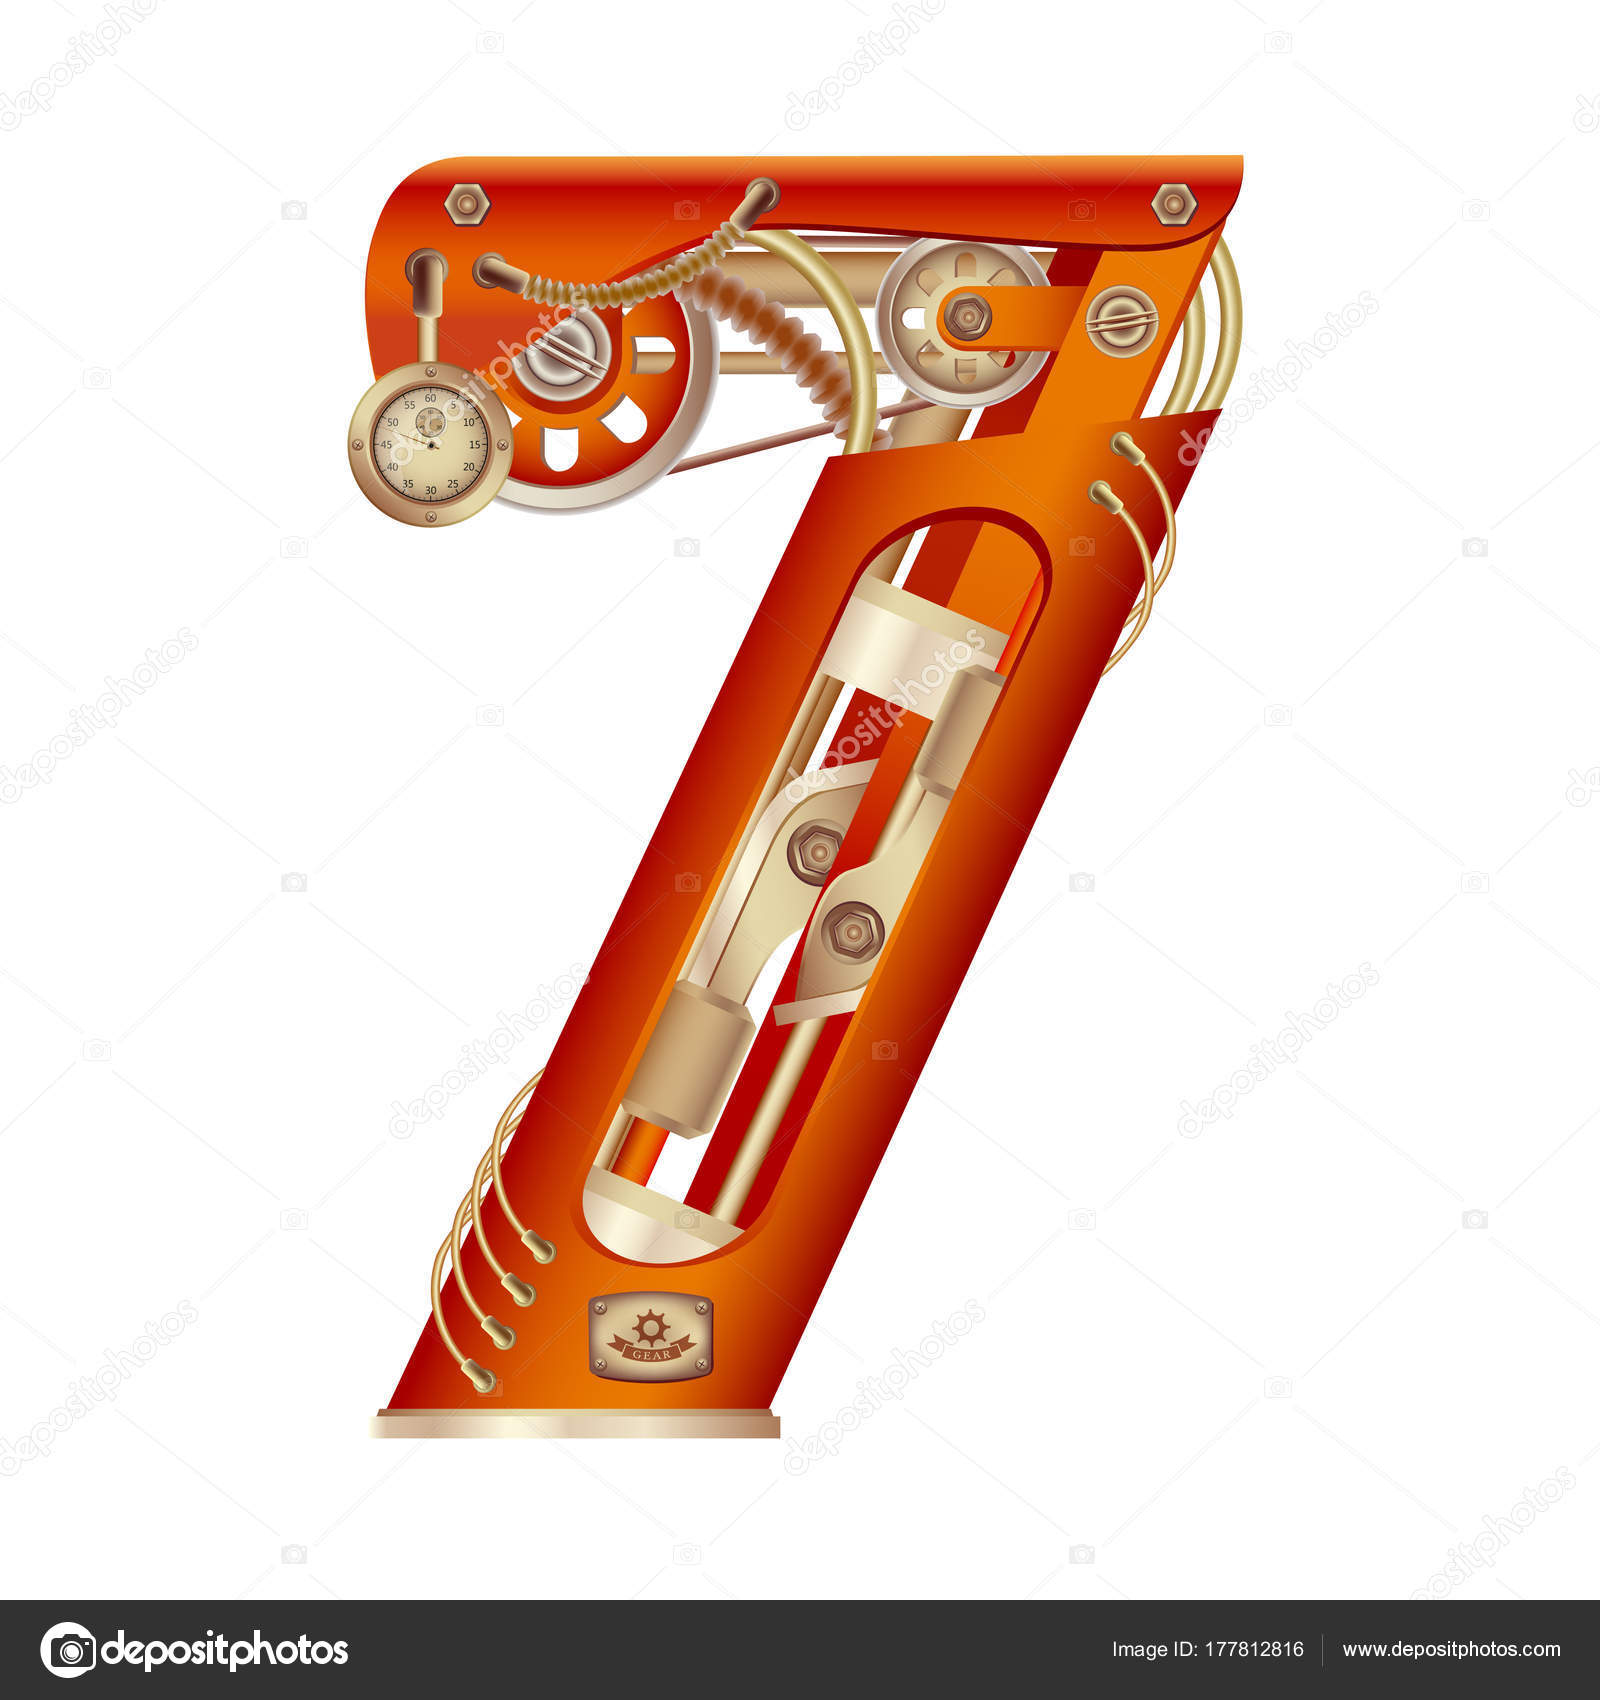 Arabic numeral 7, made in the form of a mechanism with